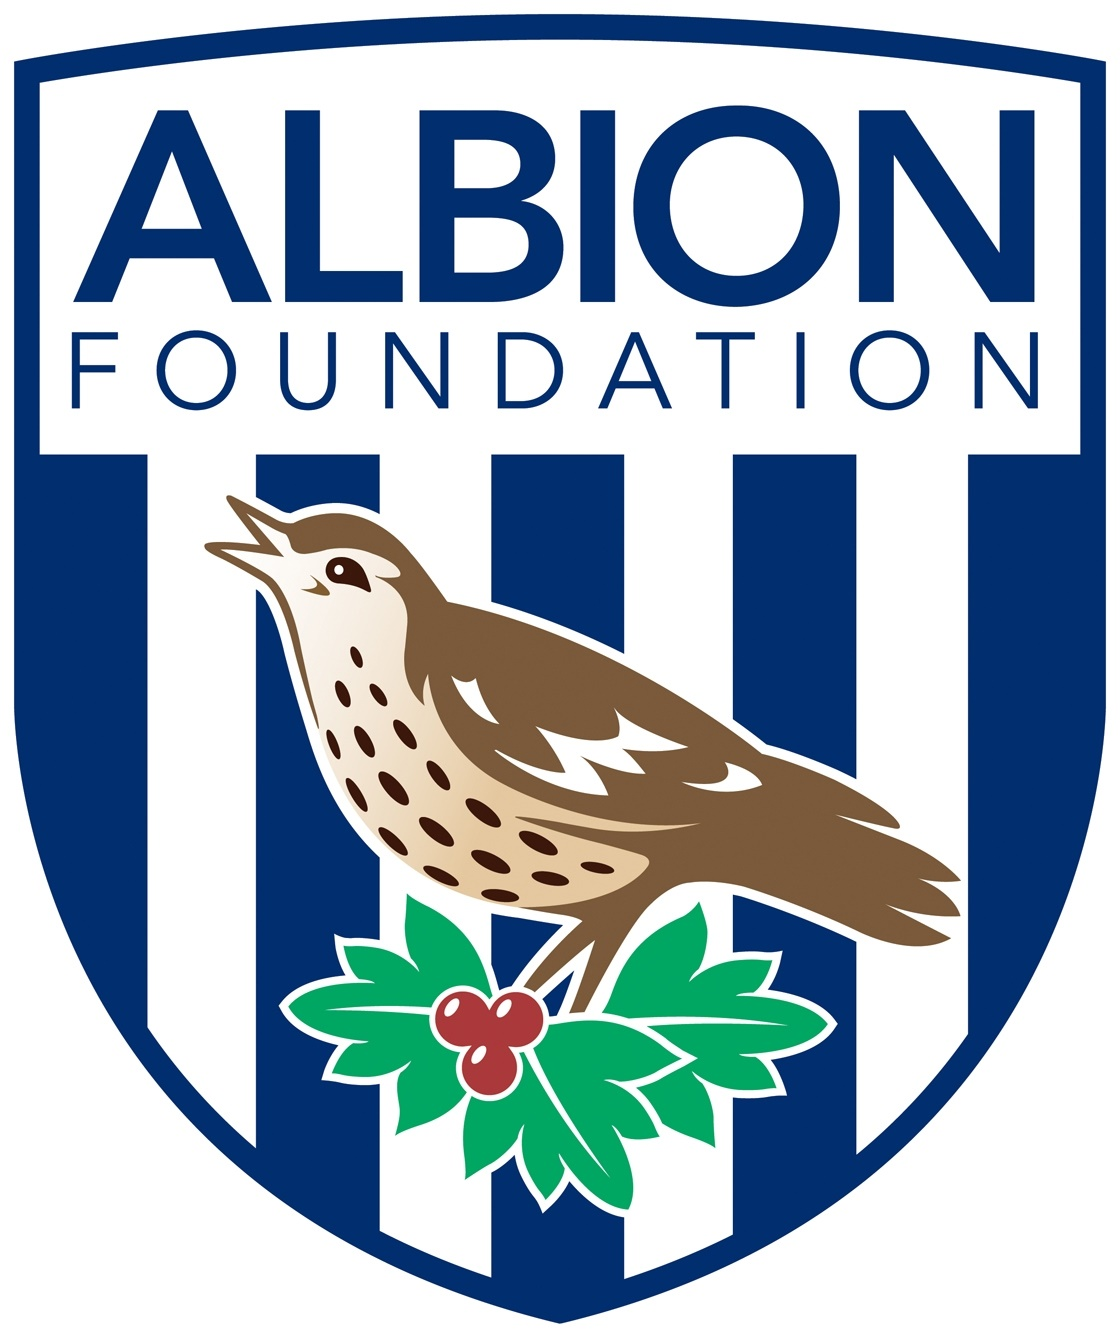 The Albion Foundation highest res